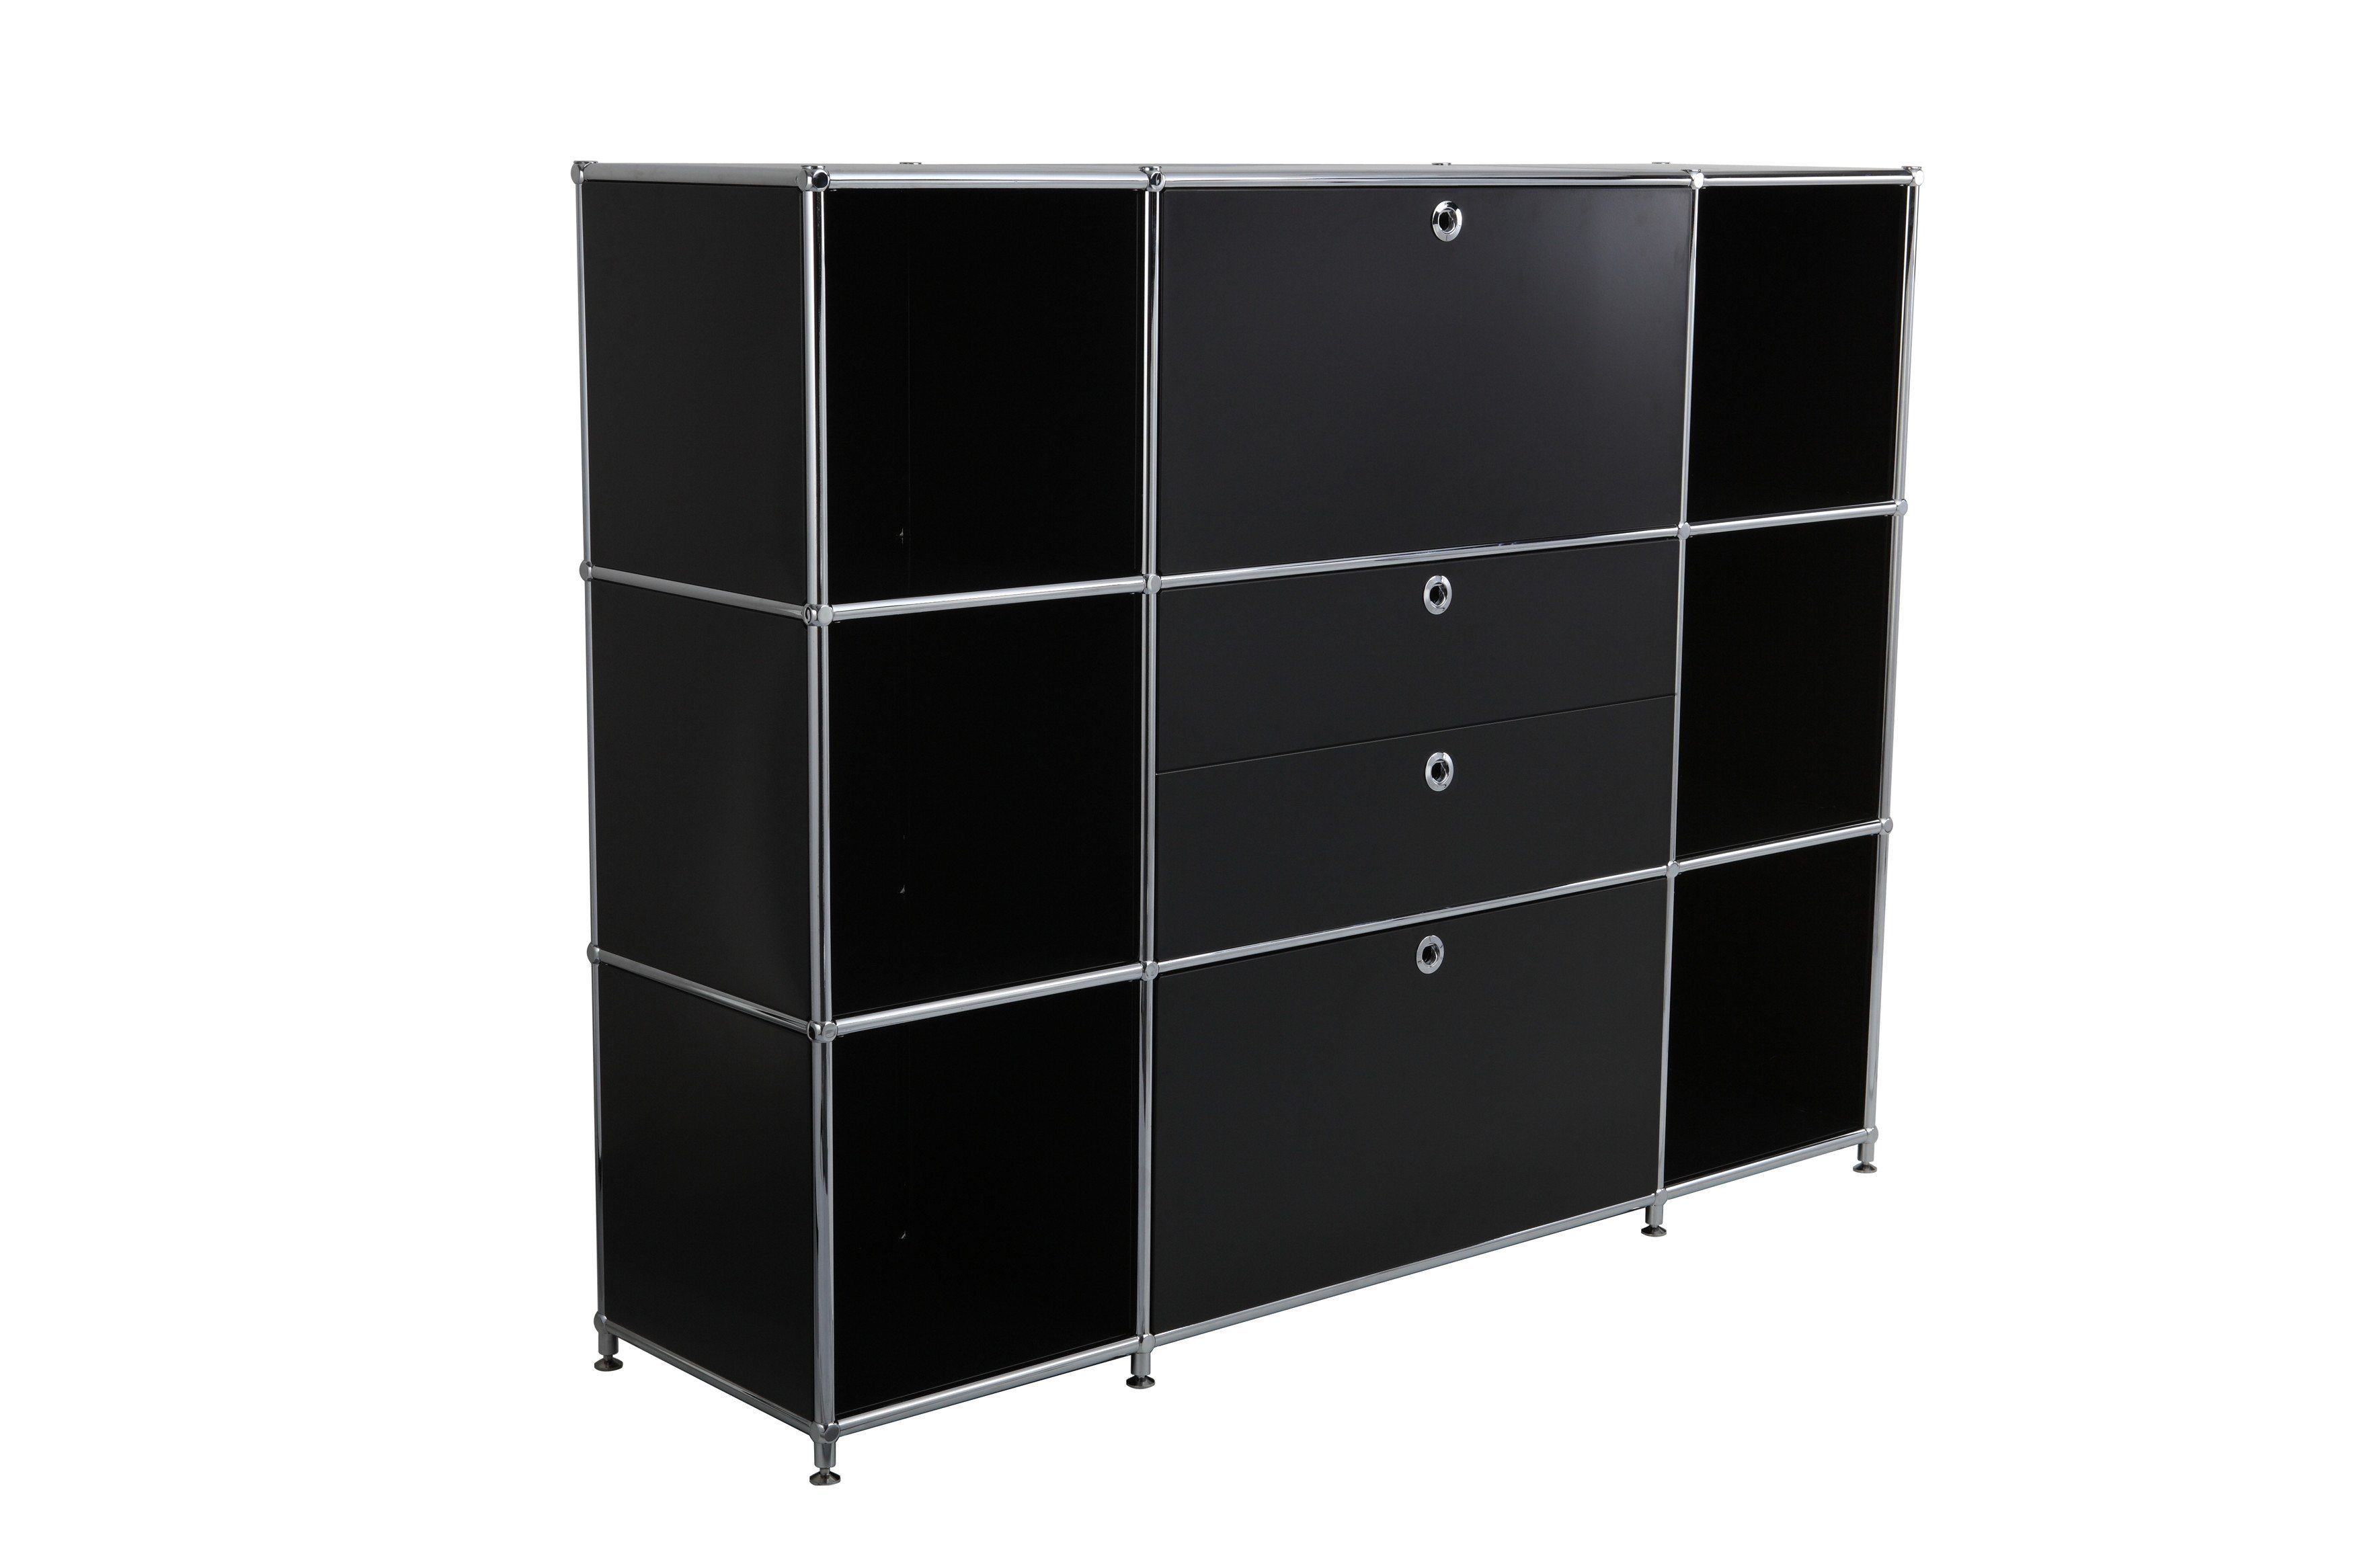 High Quality Wholesale Modular Steel Transcube Modular Filing Cabinet